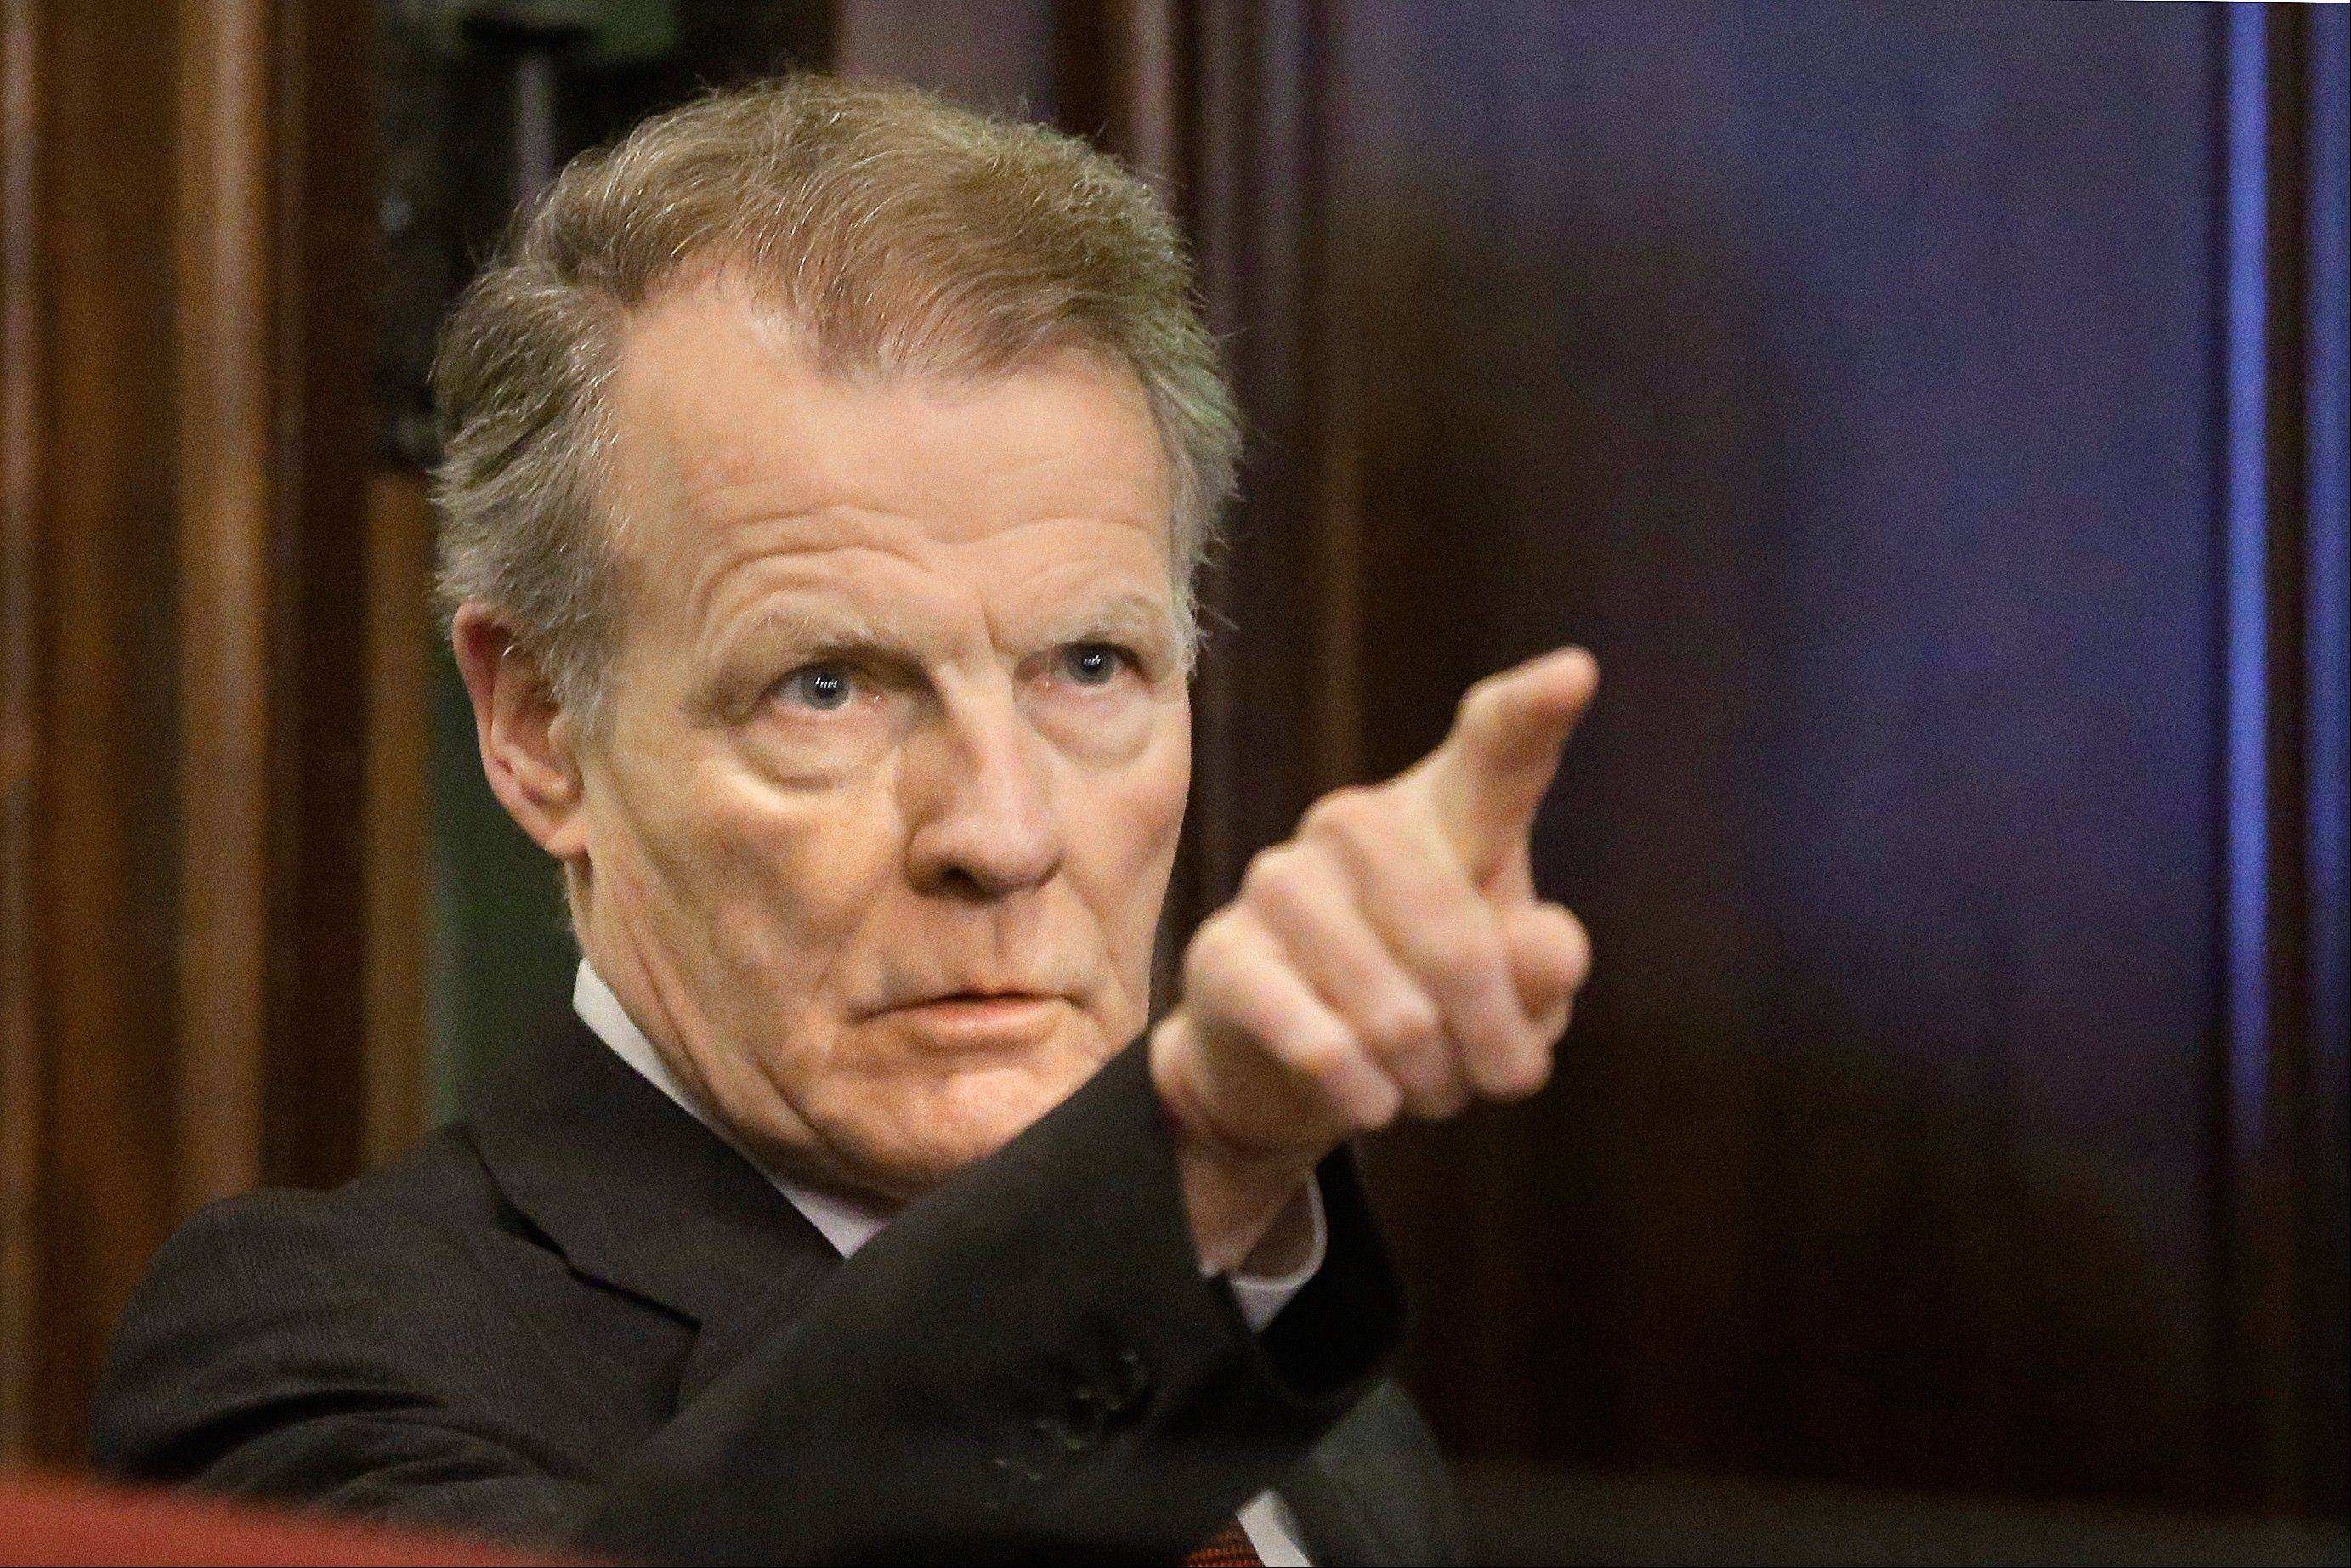 House Speaker Michael Madigan did not intervene on behalf of Concept Schools Inc., his spokesman said.